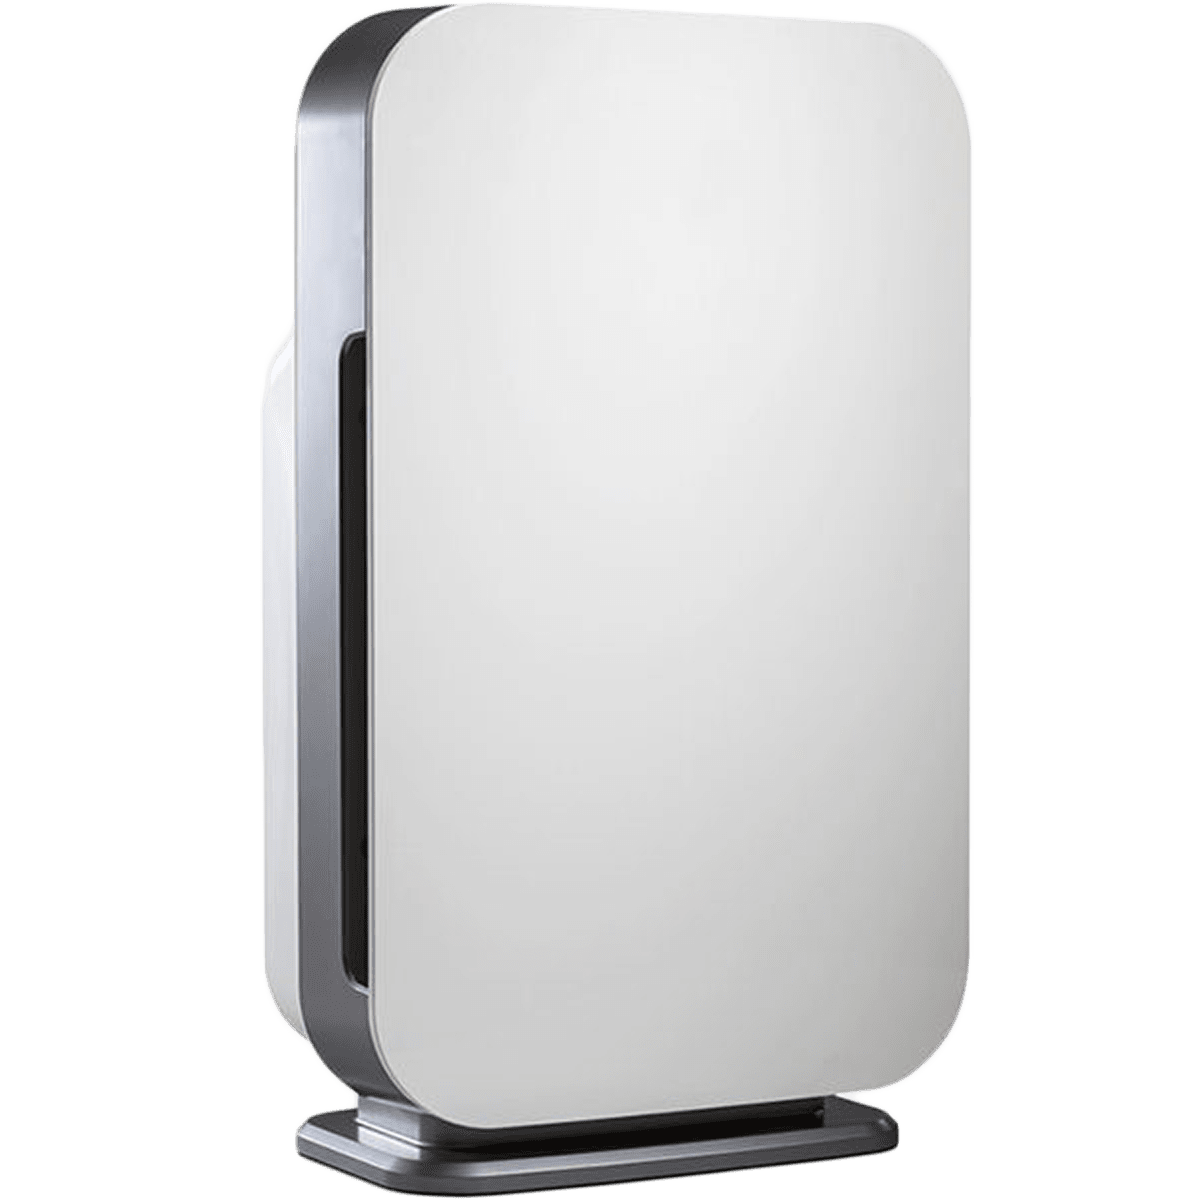 Alen BreatheSmart Flex HEPA Air Purifier al6261